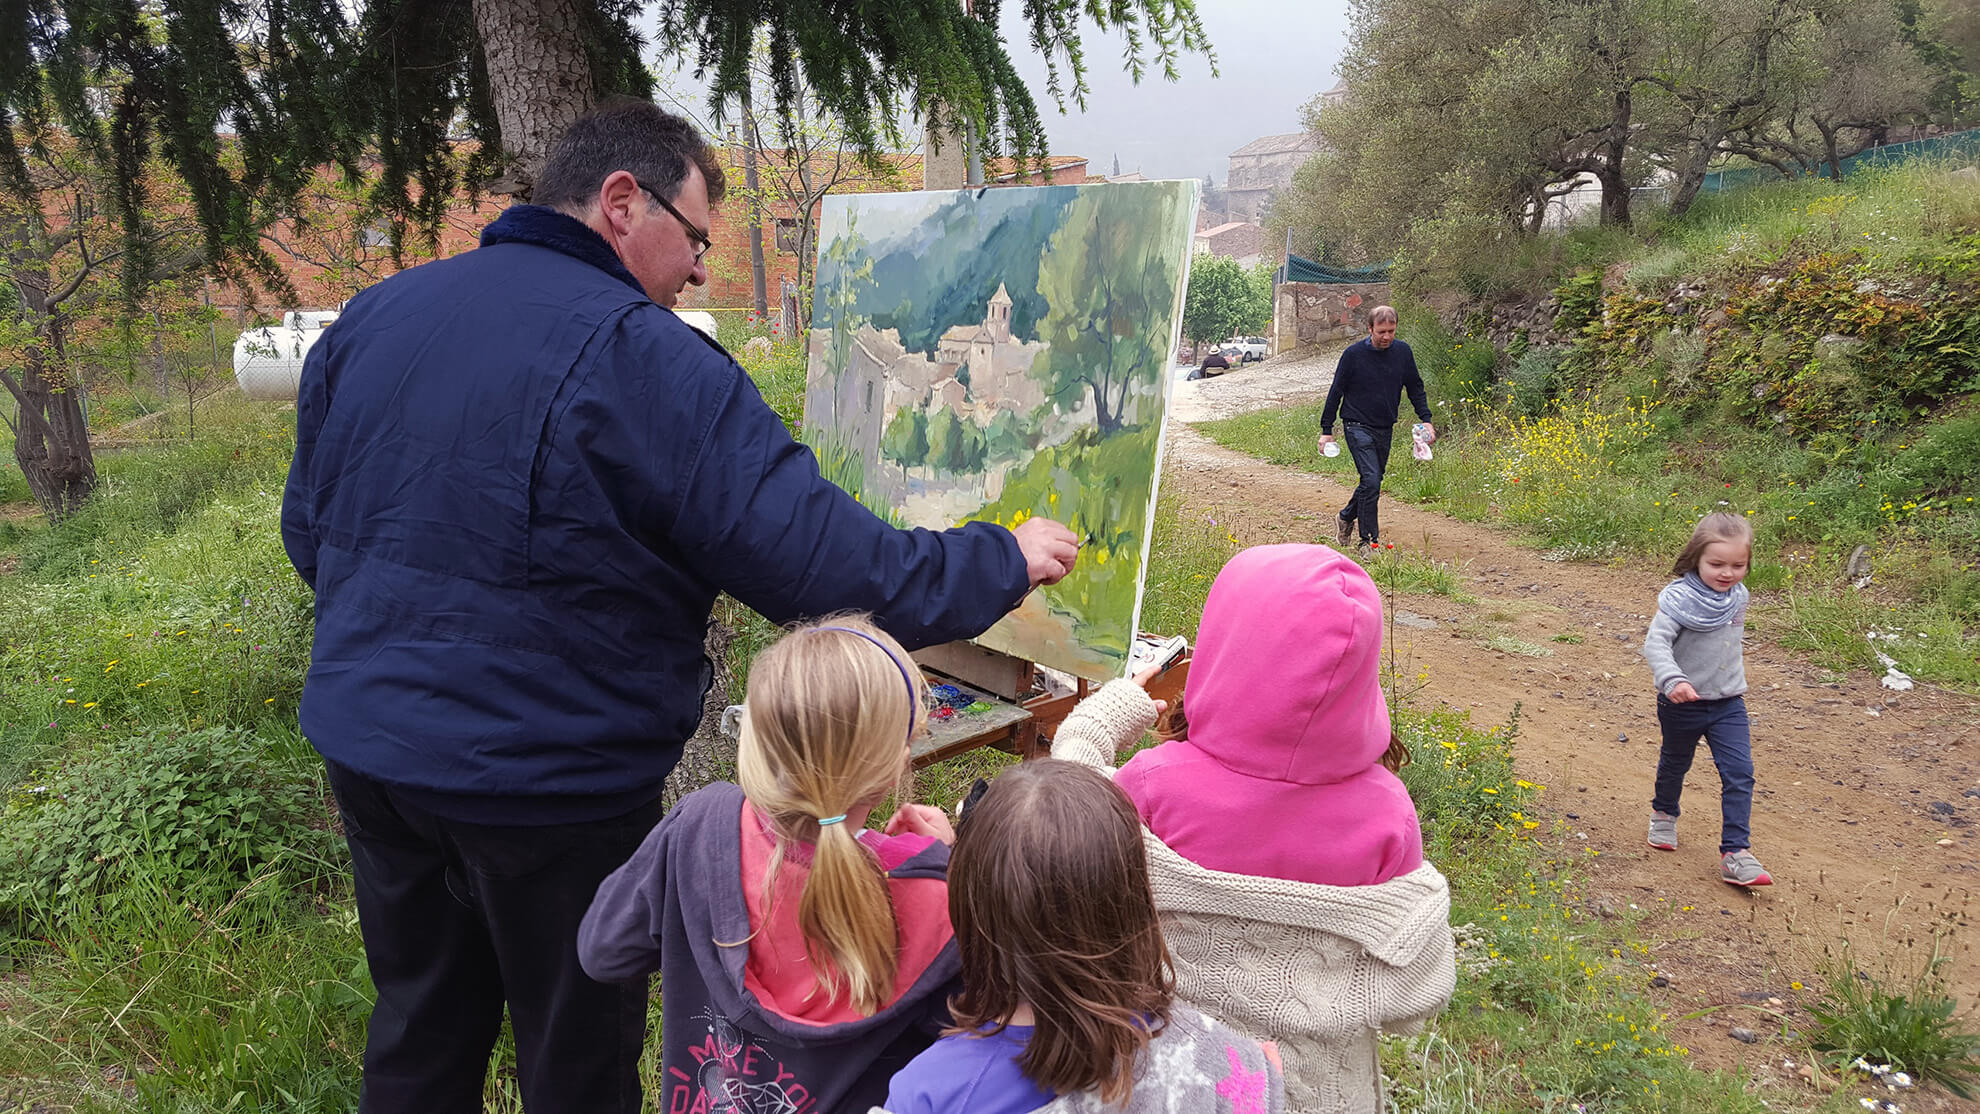 Outdoor quick painting contest at the Catalan village of L'Argentera